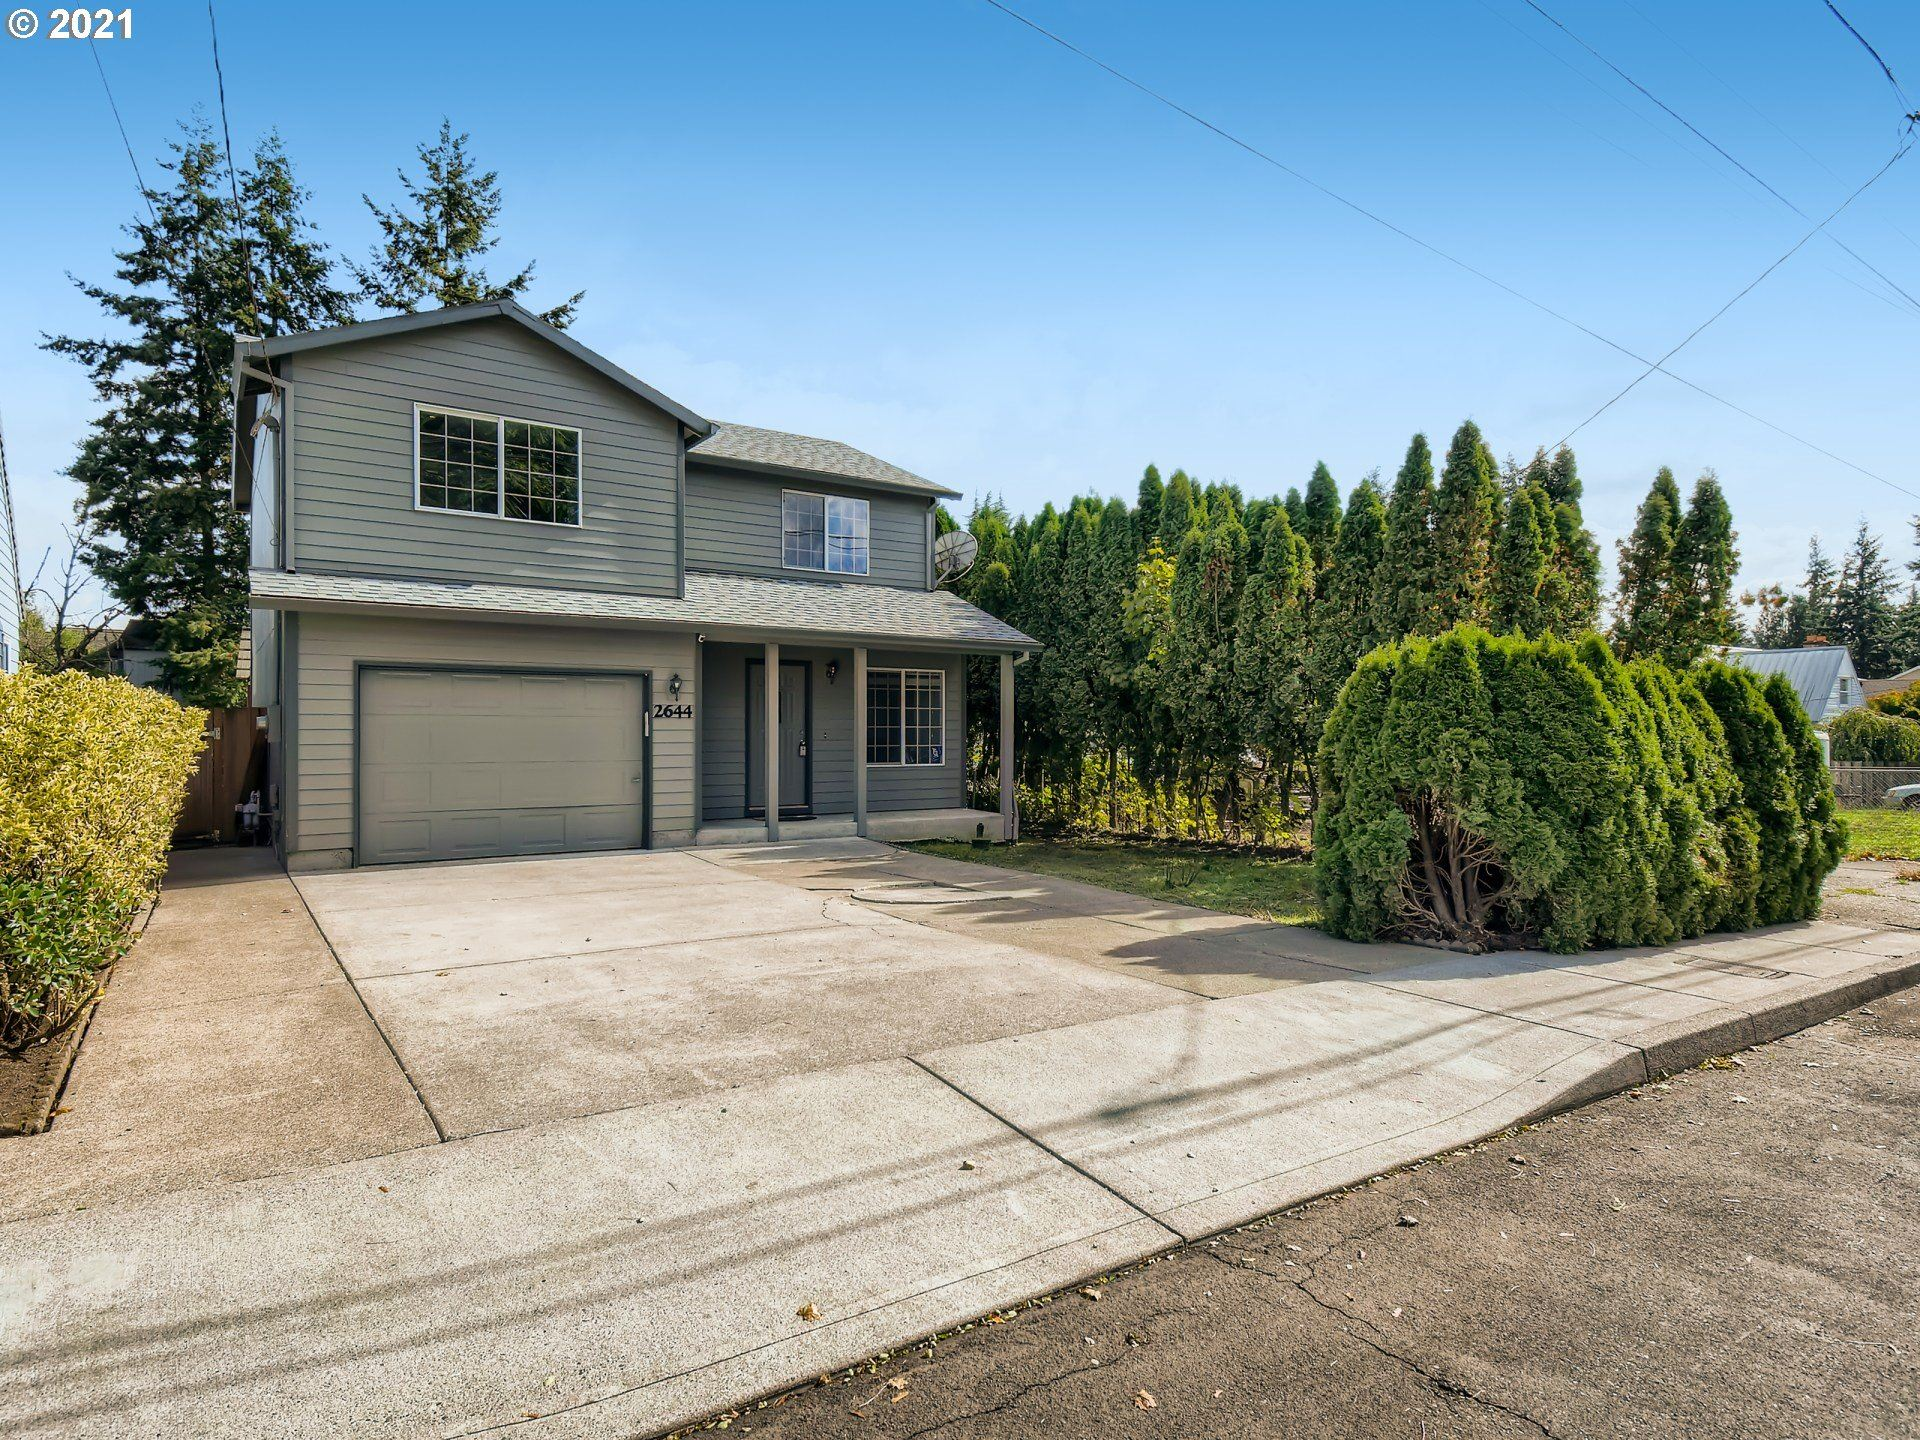 2644 SE 118TH AVE, Portland, OR 97266 - MLS#: 21549454